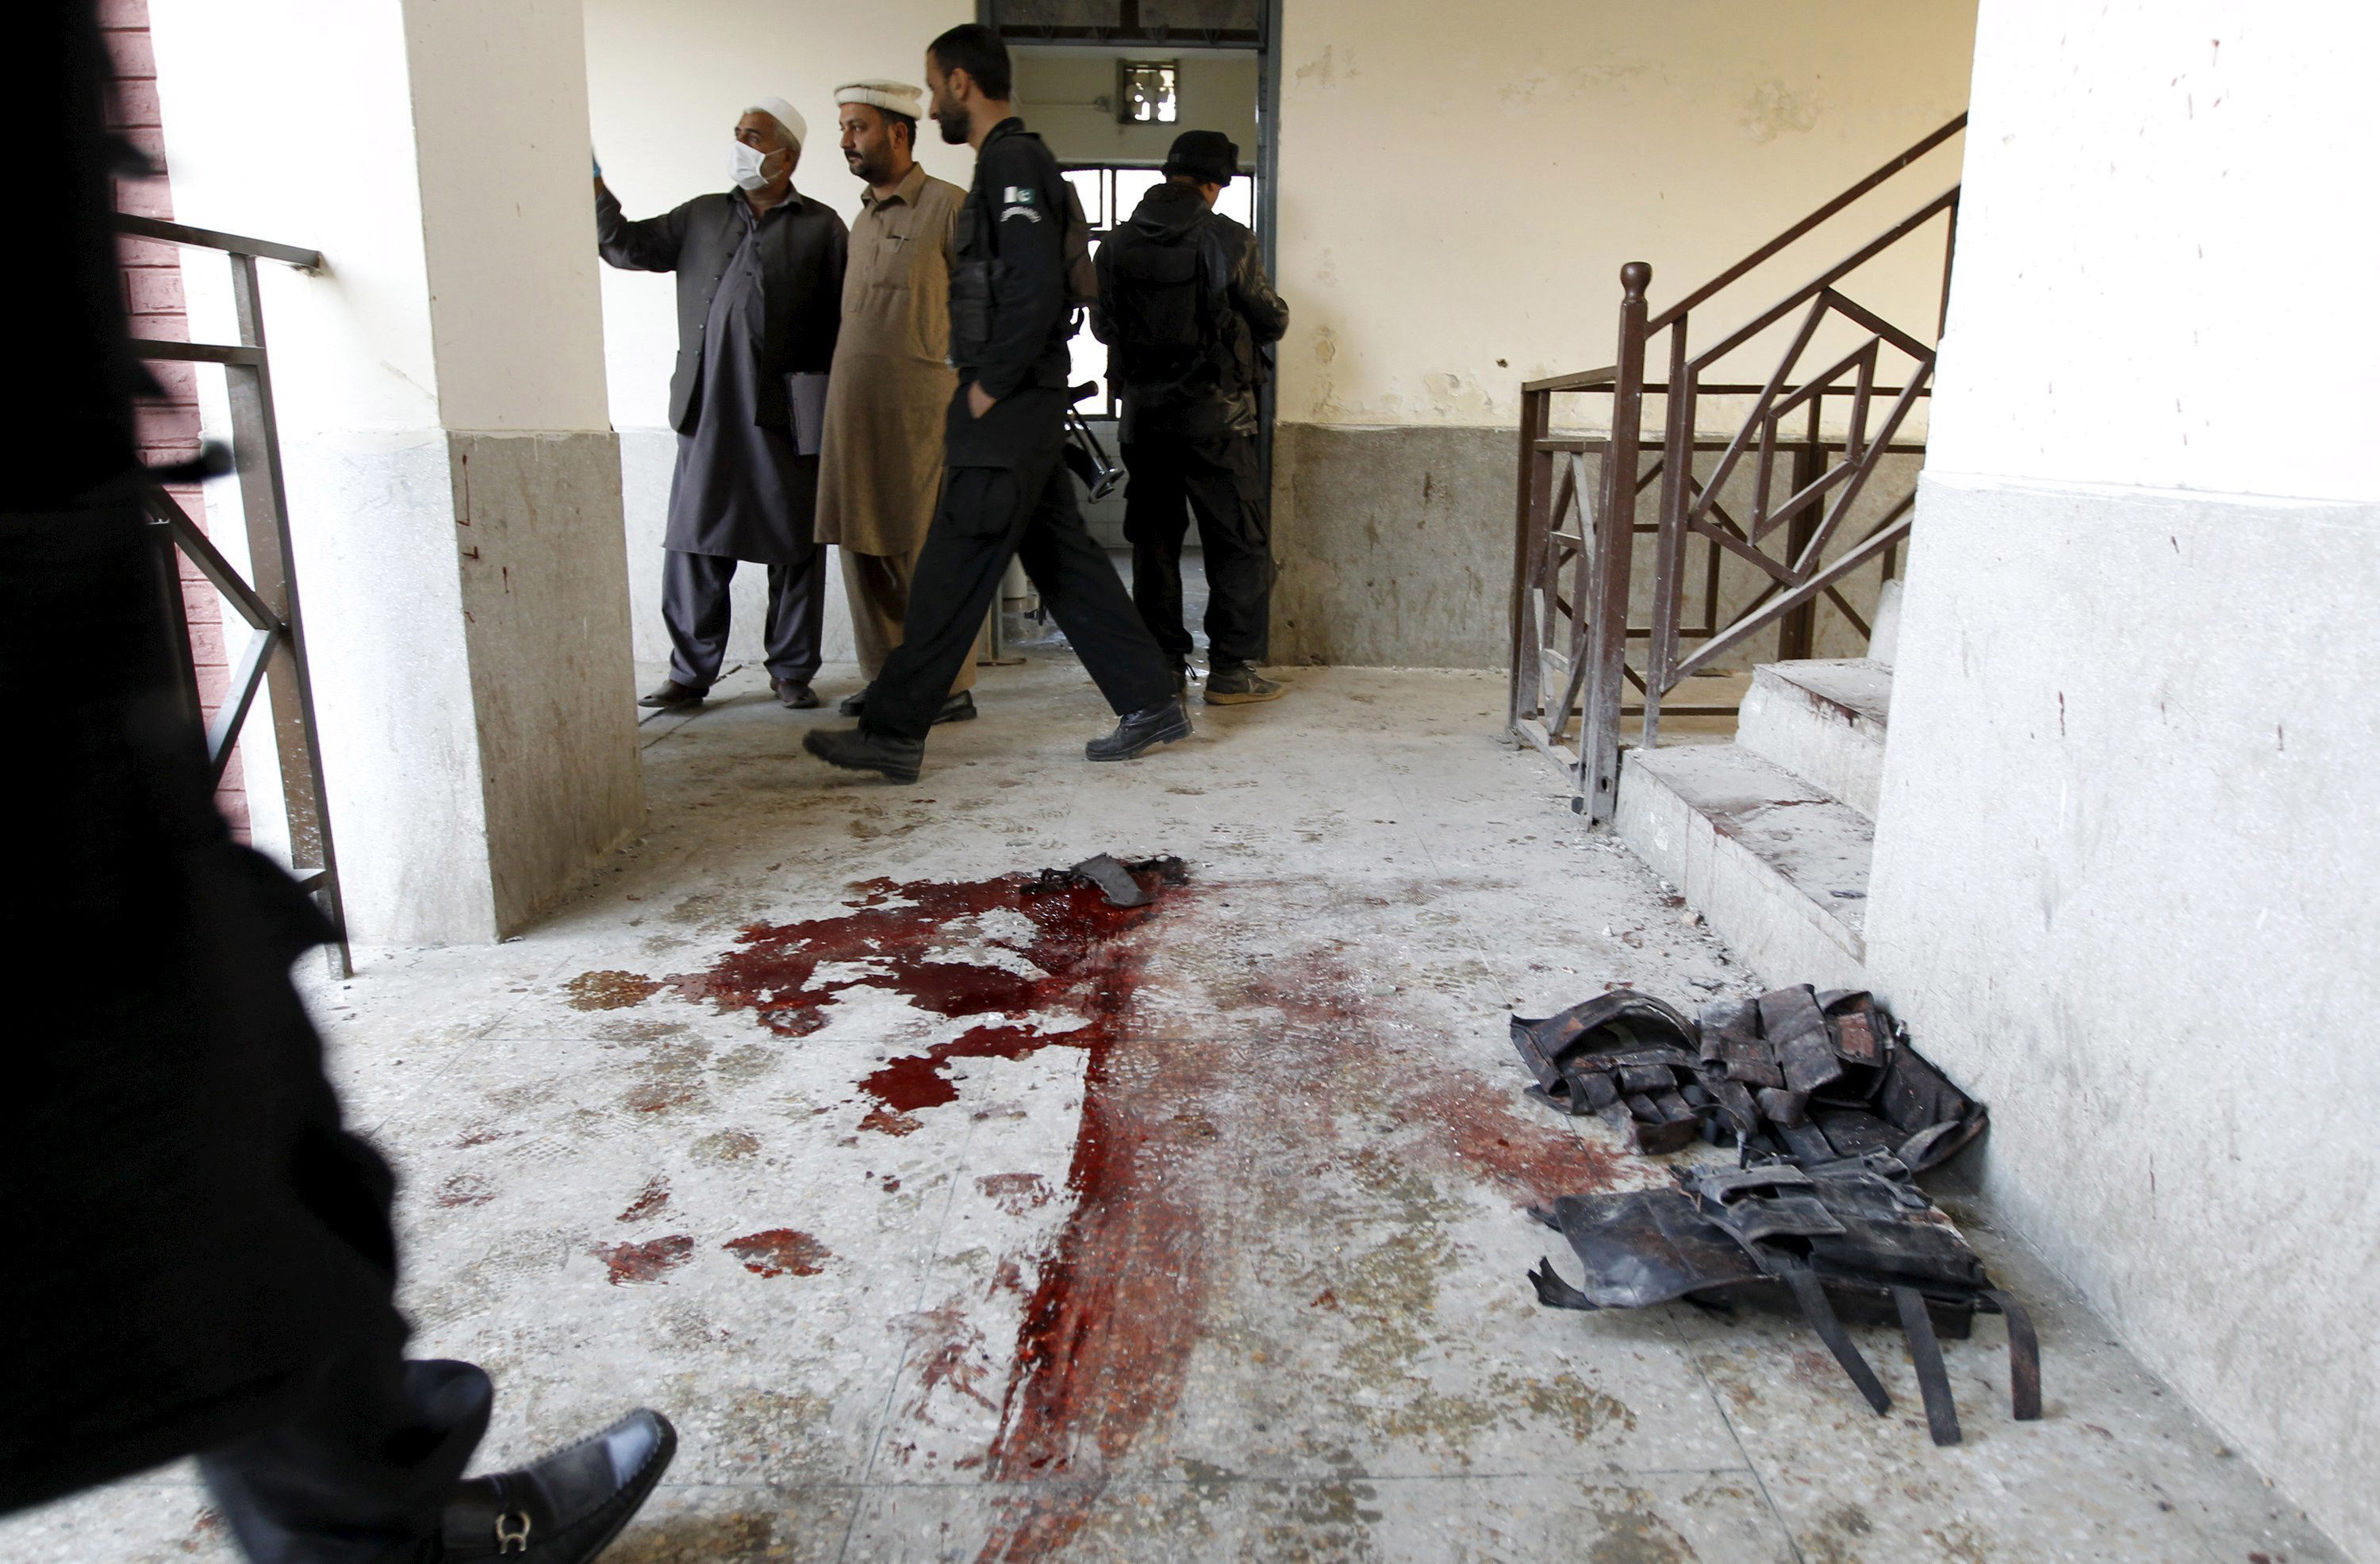 Blood stains and flak jackets used by attackers remain in the hallway of a dormitory where a Taliban attack took place at Bacha Khan University in Charsadda, Pakistan, on Jan. 20, 2016.